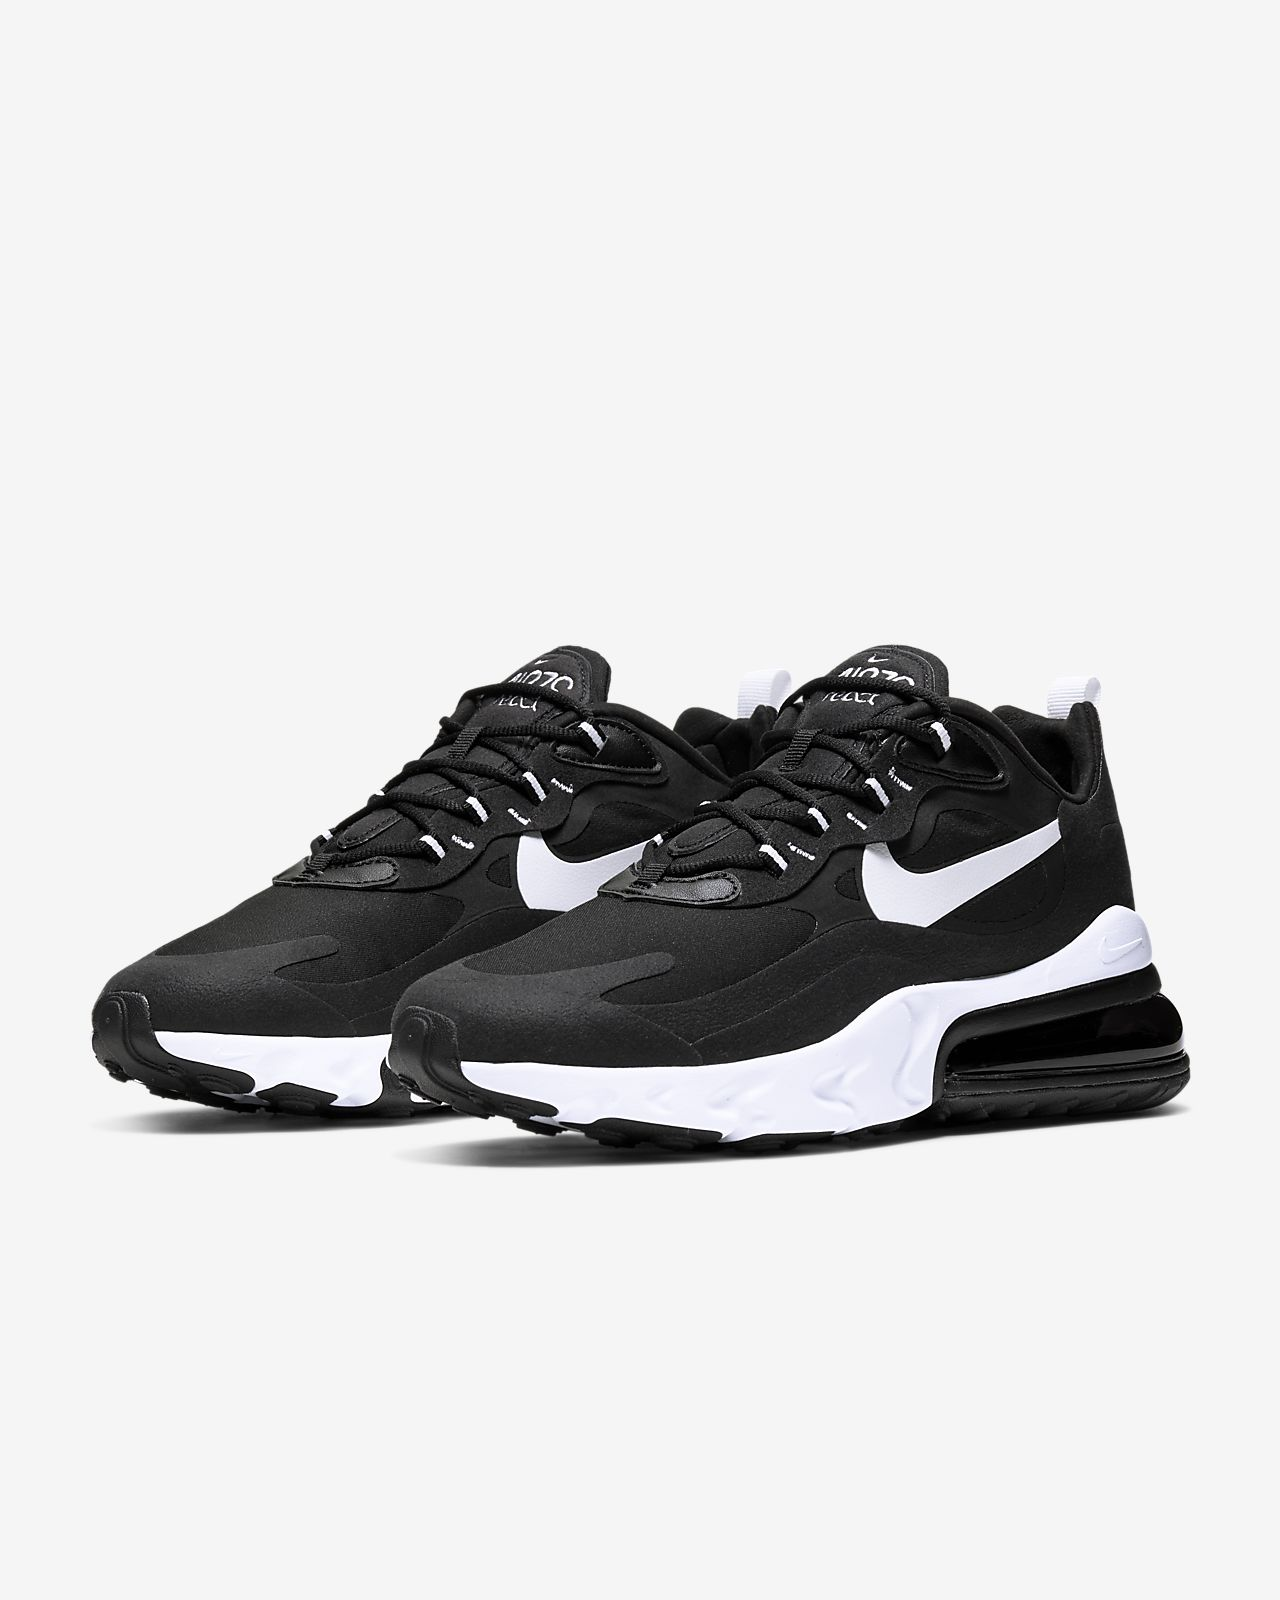 chaussure nike 270 homme noir